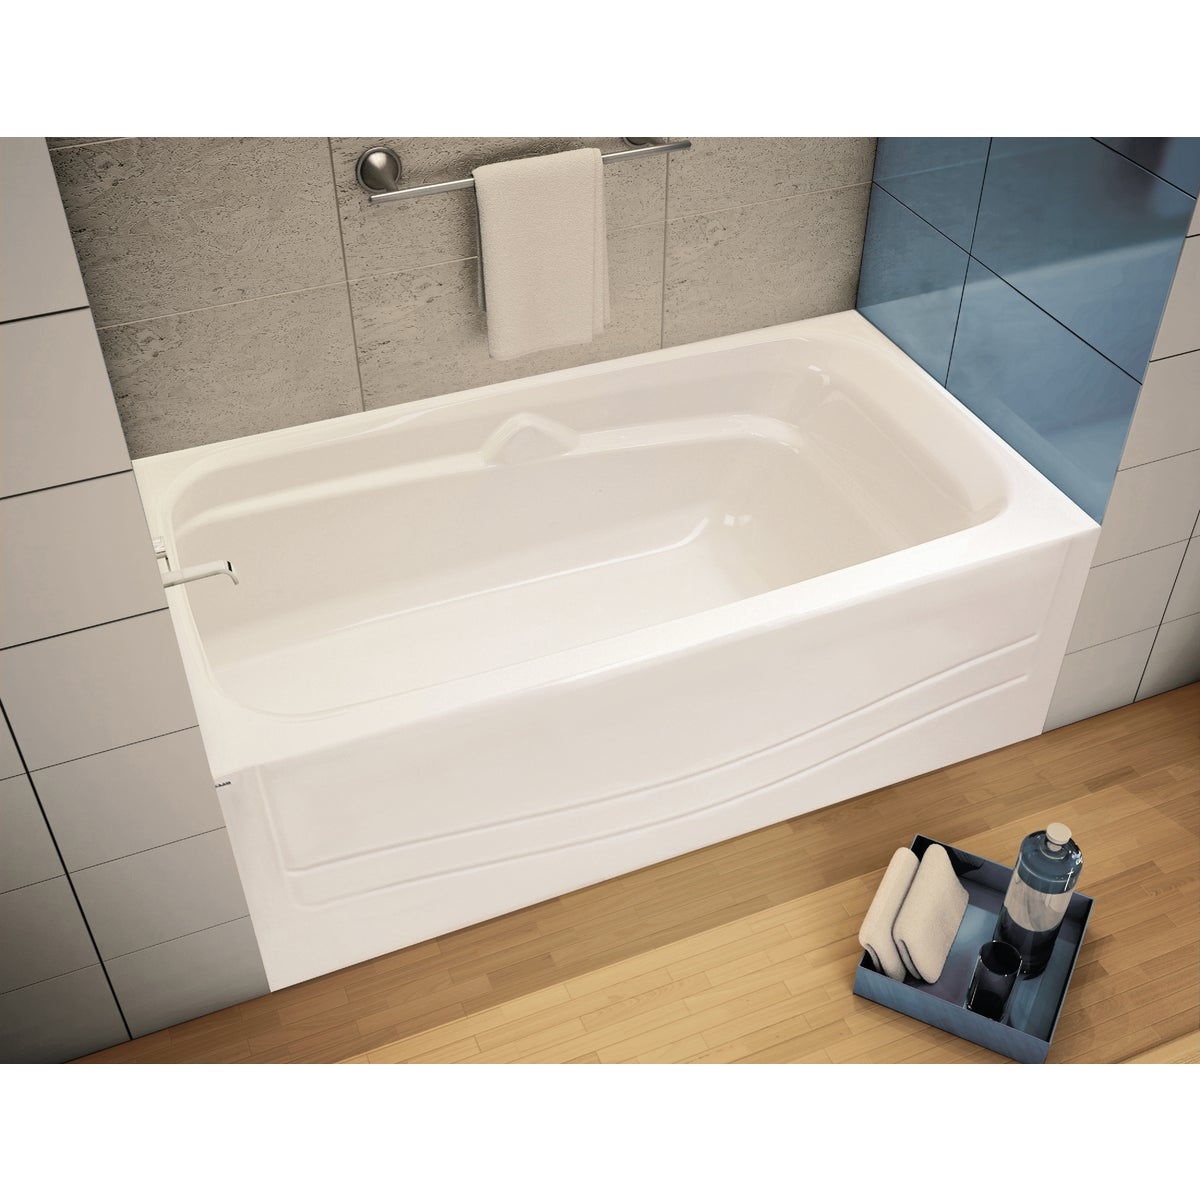 WHITE LH SOAKING TUB